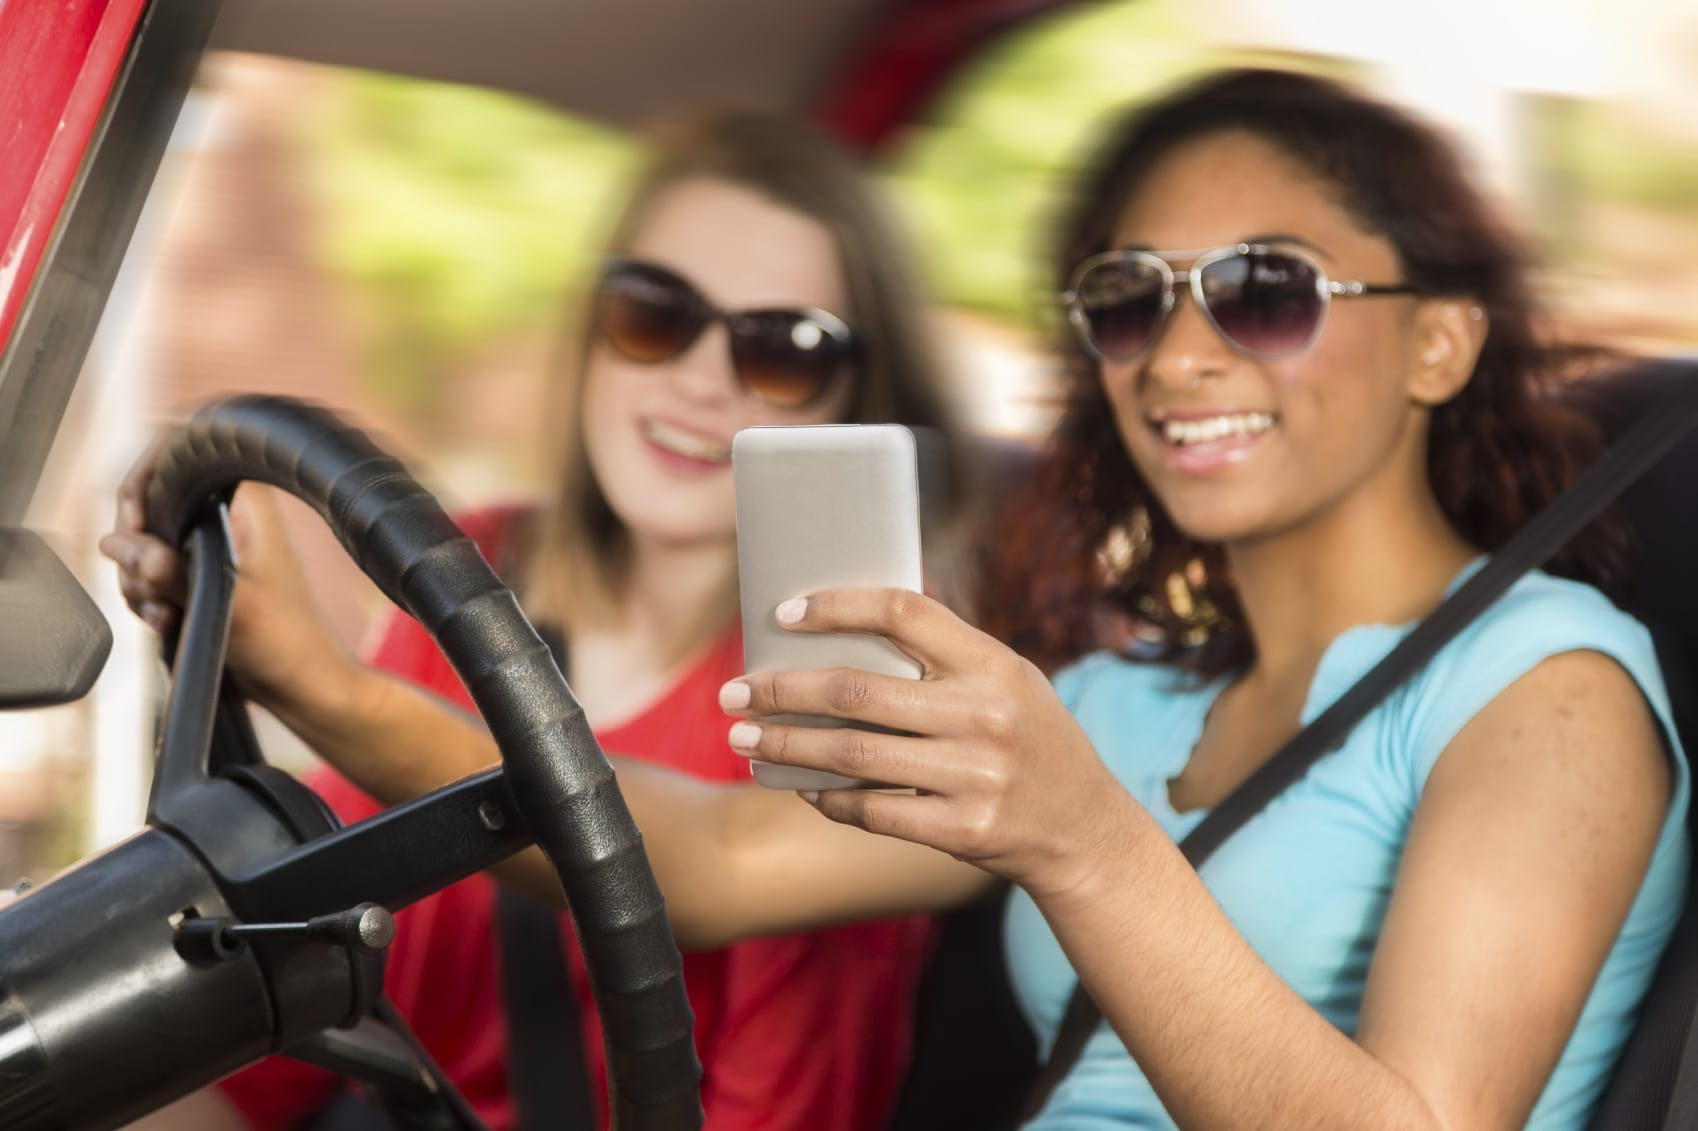 College-aged Girls Texting While Driving Stock Photo